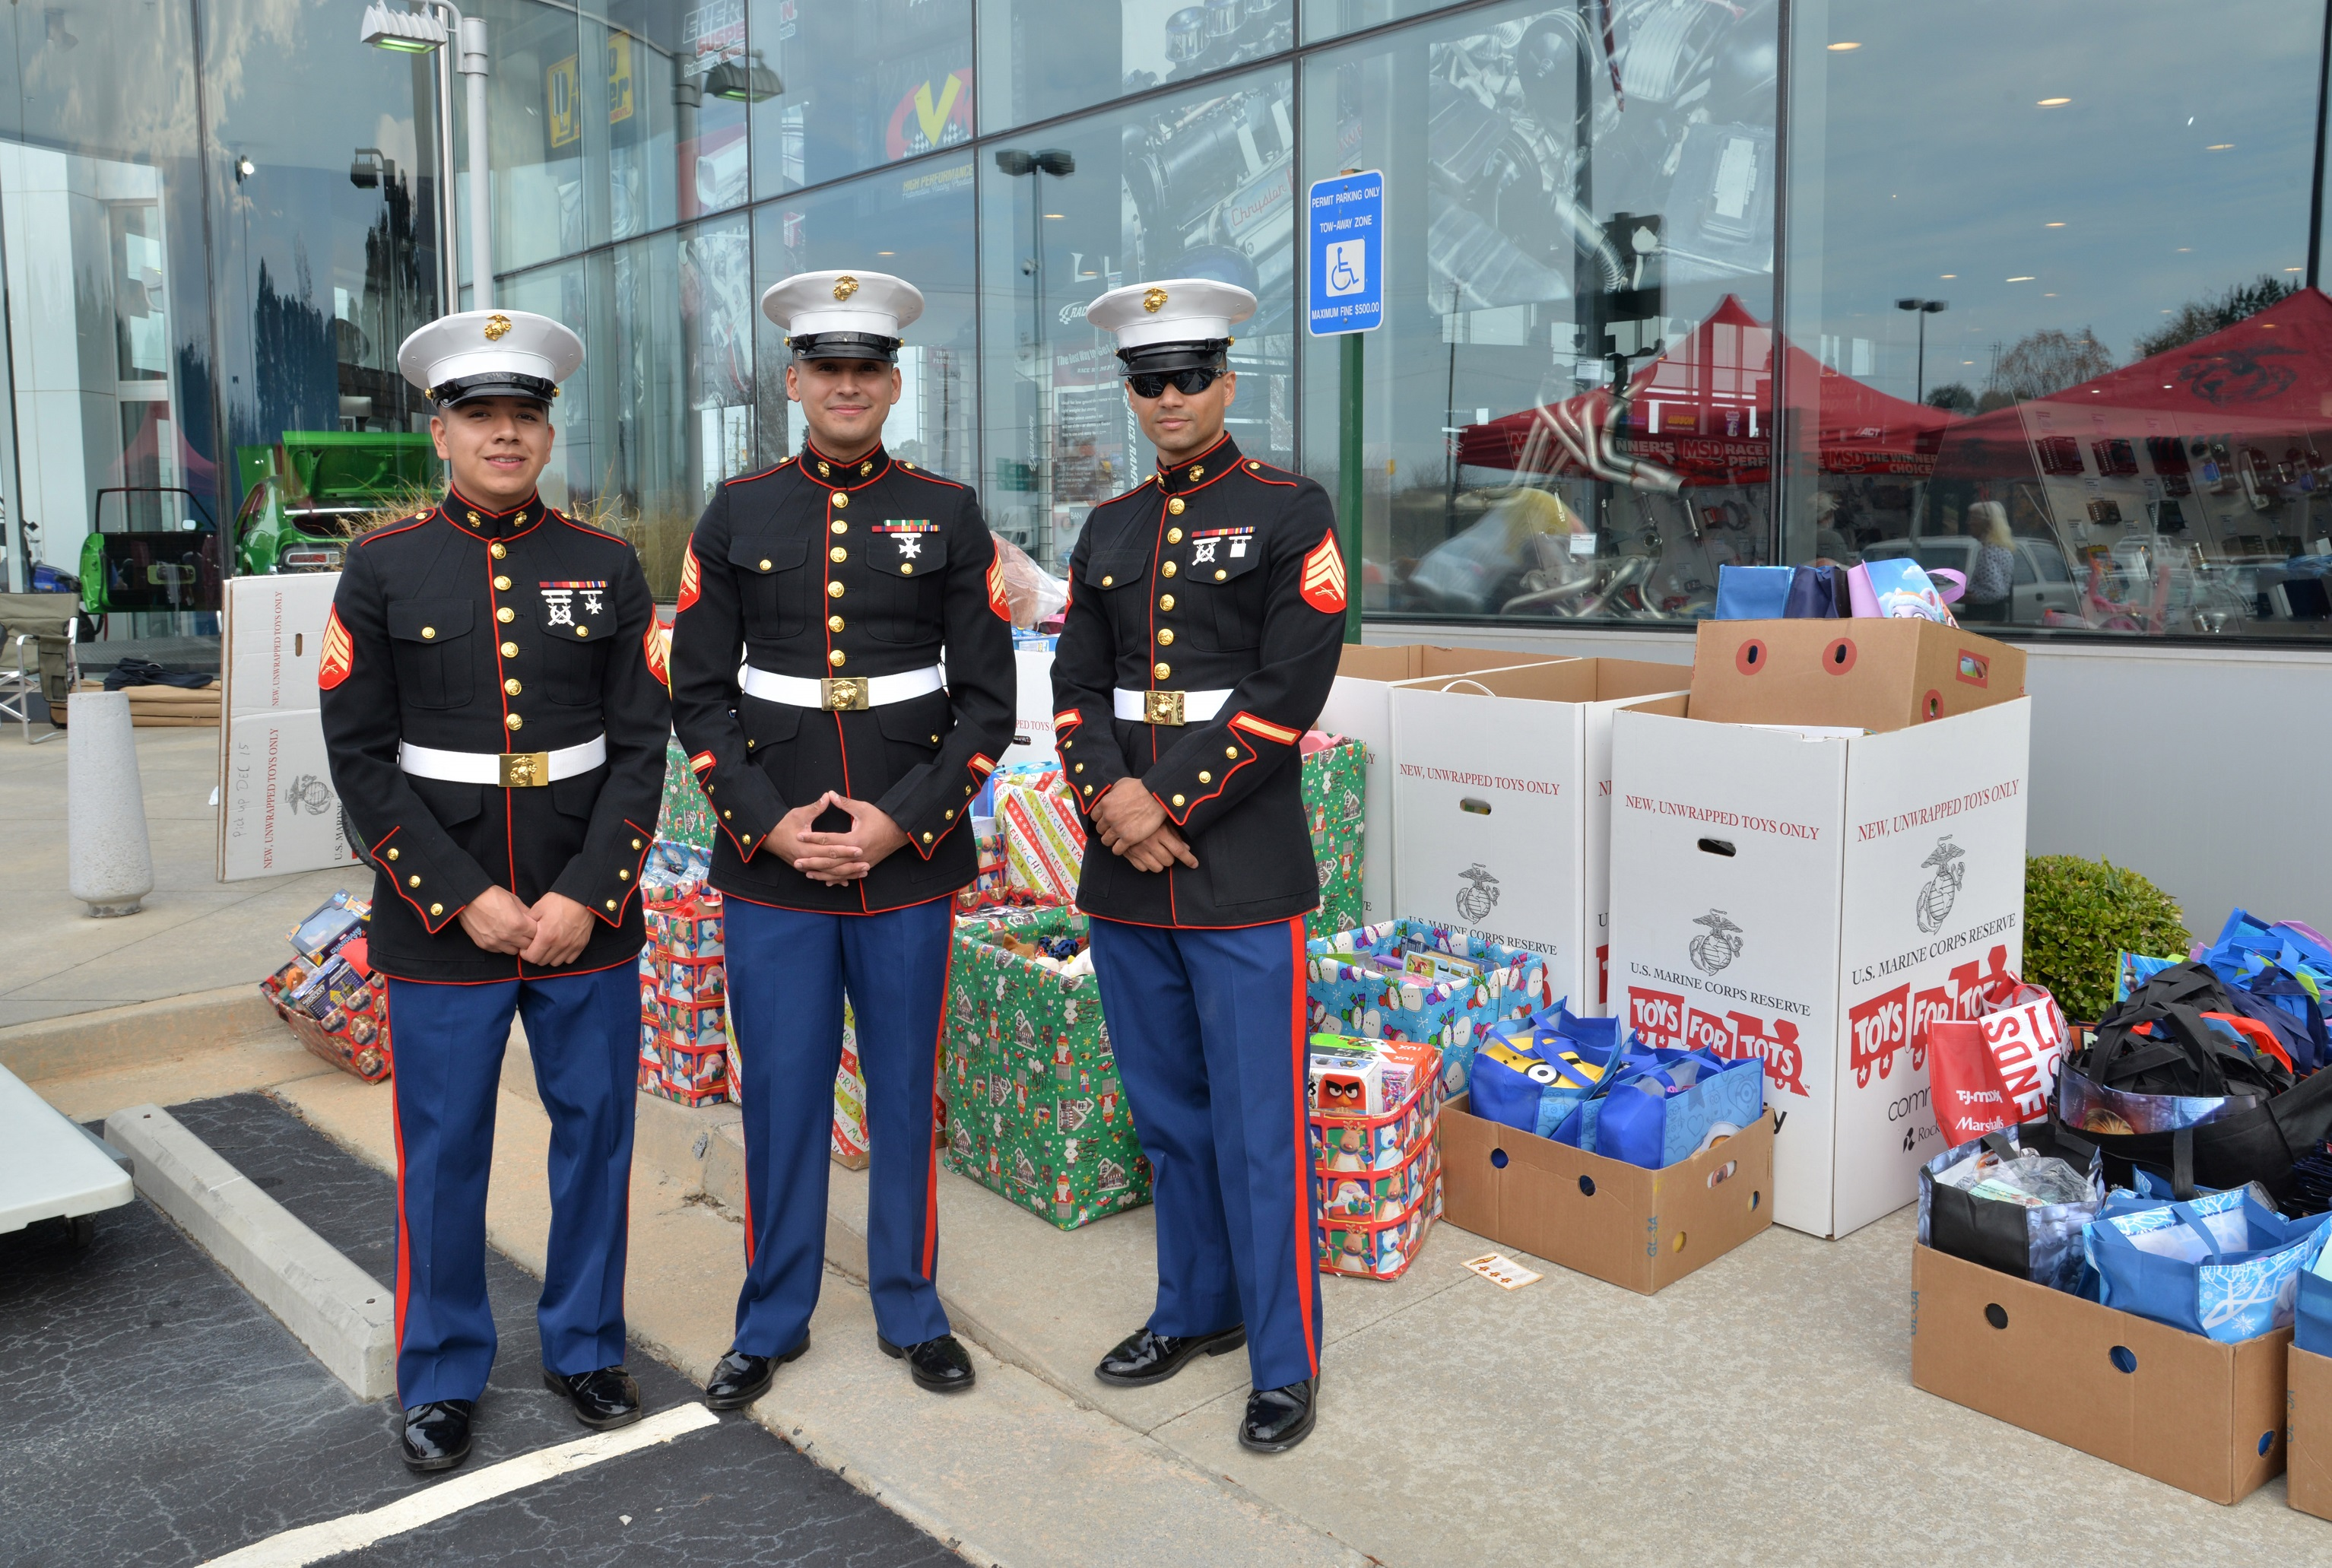 Toys for Tots Cruise In Marines